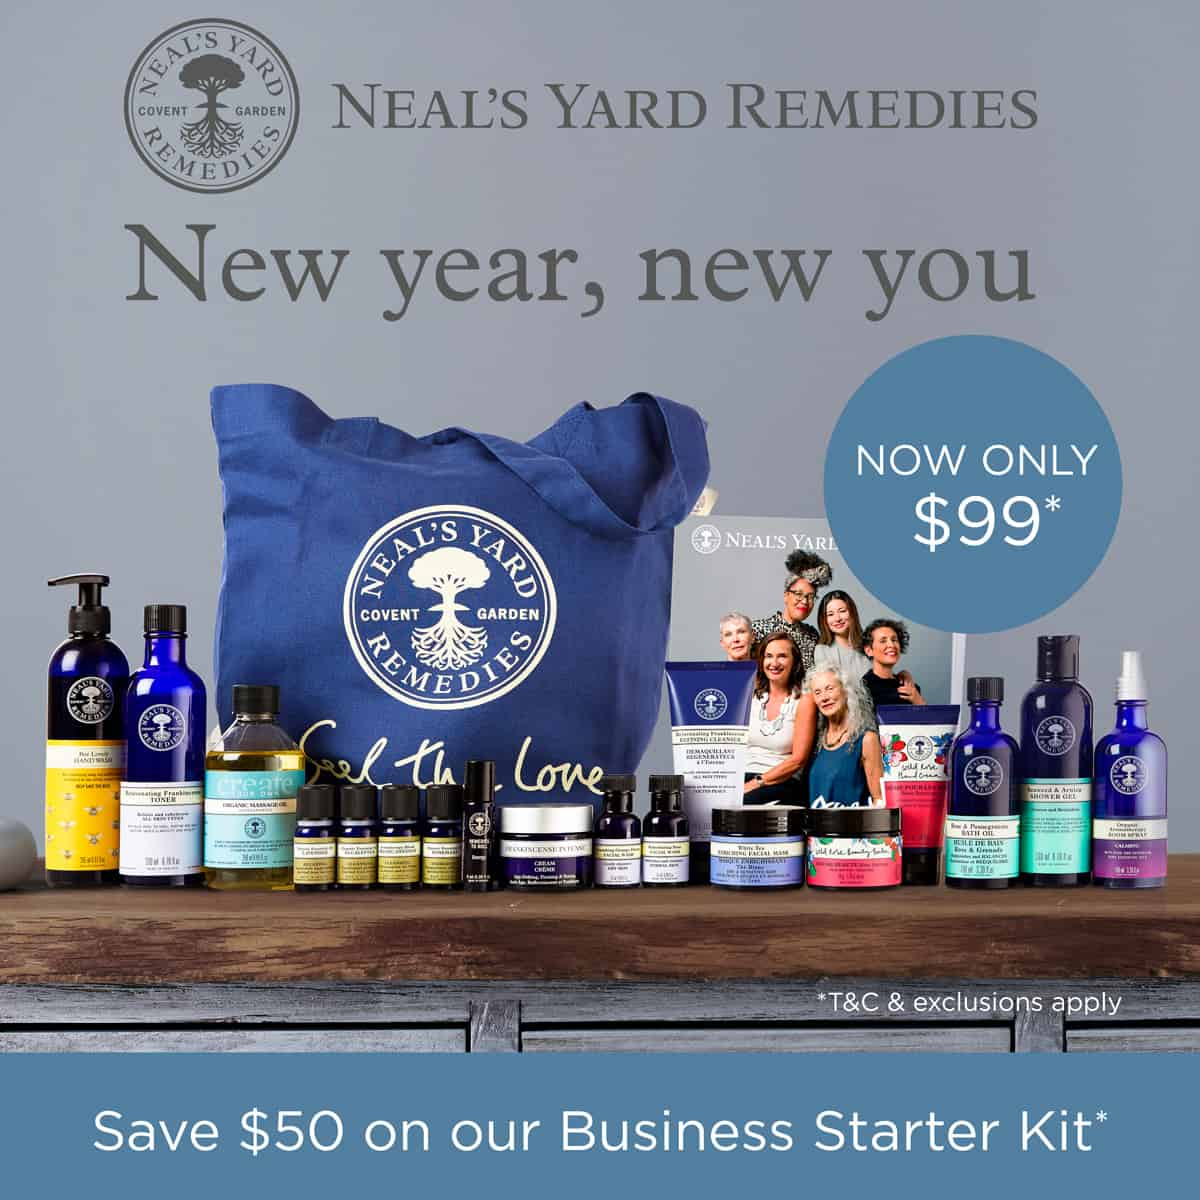 Grow an Organic business! Join Neal's Yard Remedies for $99 and get over $500 in product!